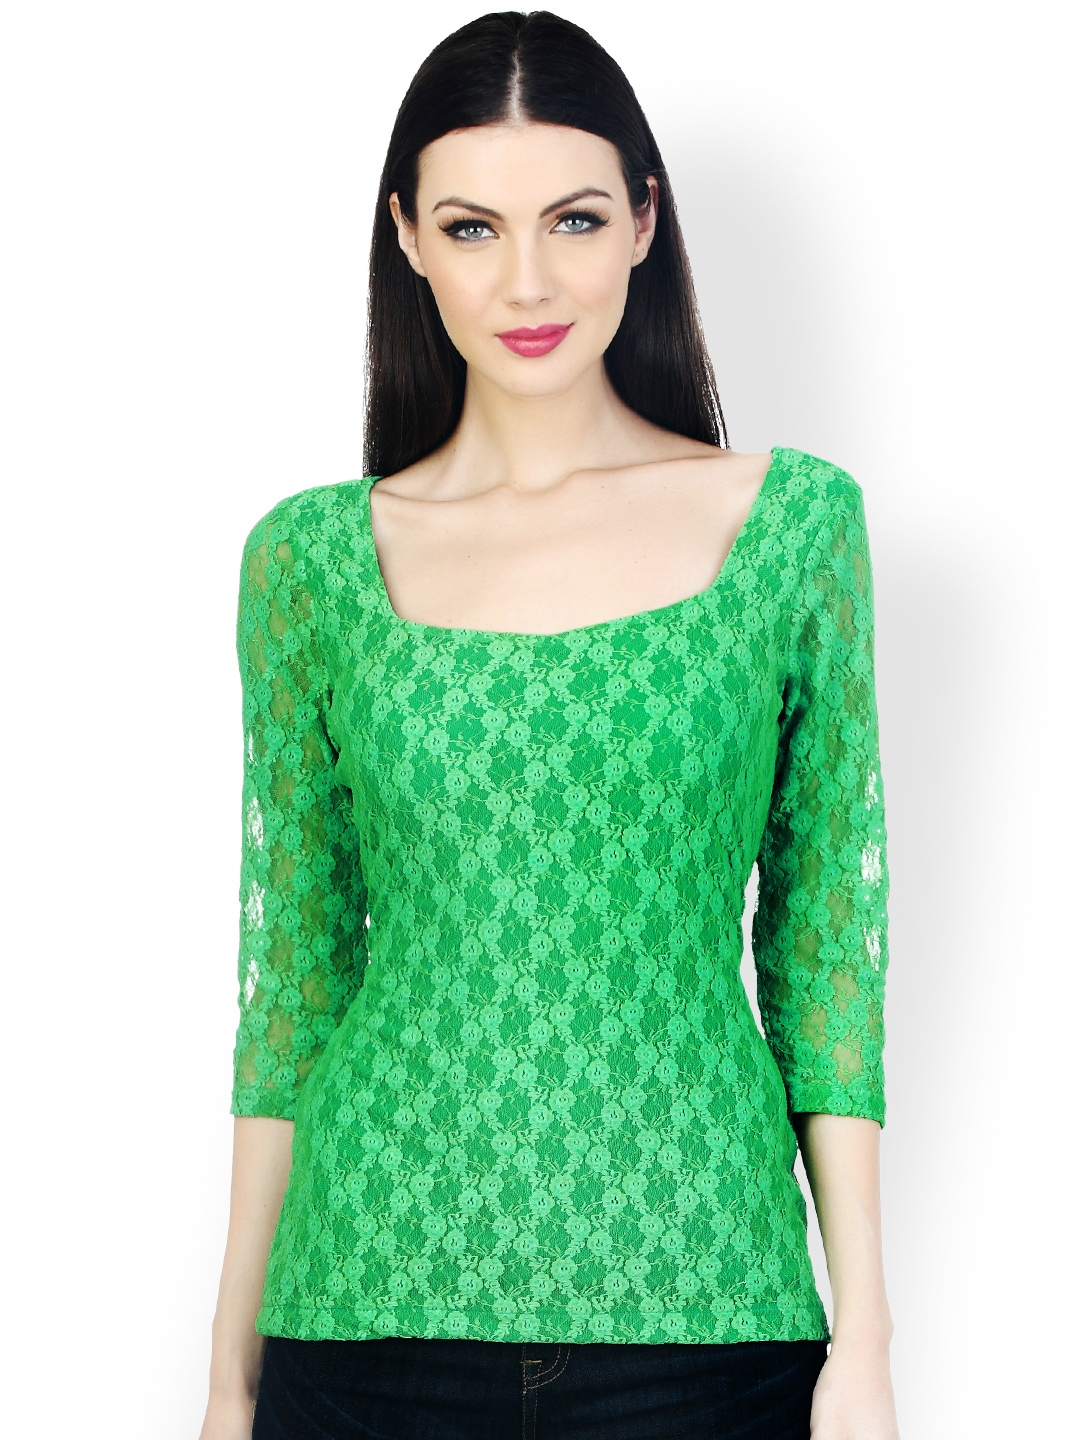 Shop Online at metools.ml for the Latest Womens Green Lace Up Shirts, Tunics, Blouses, Halter Tops & More Womens Tops. FREE SHIPPING AVAILABLE!